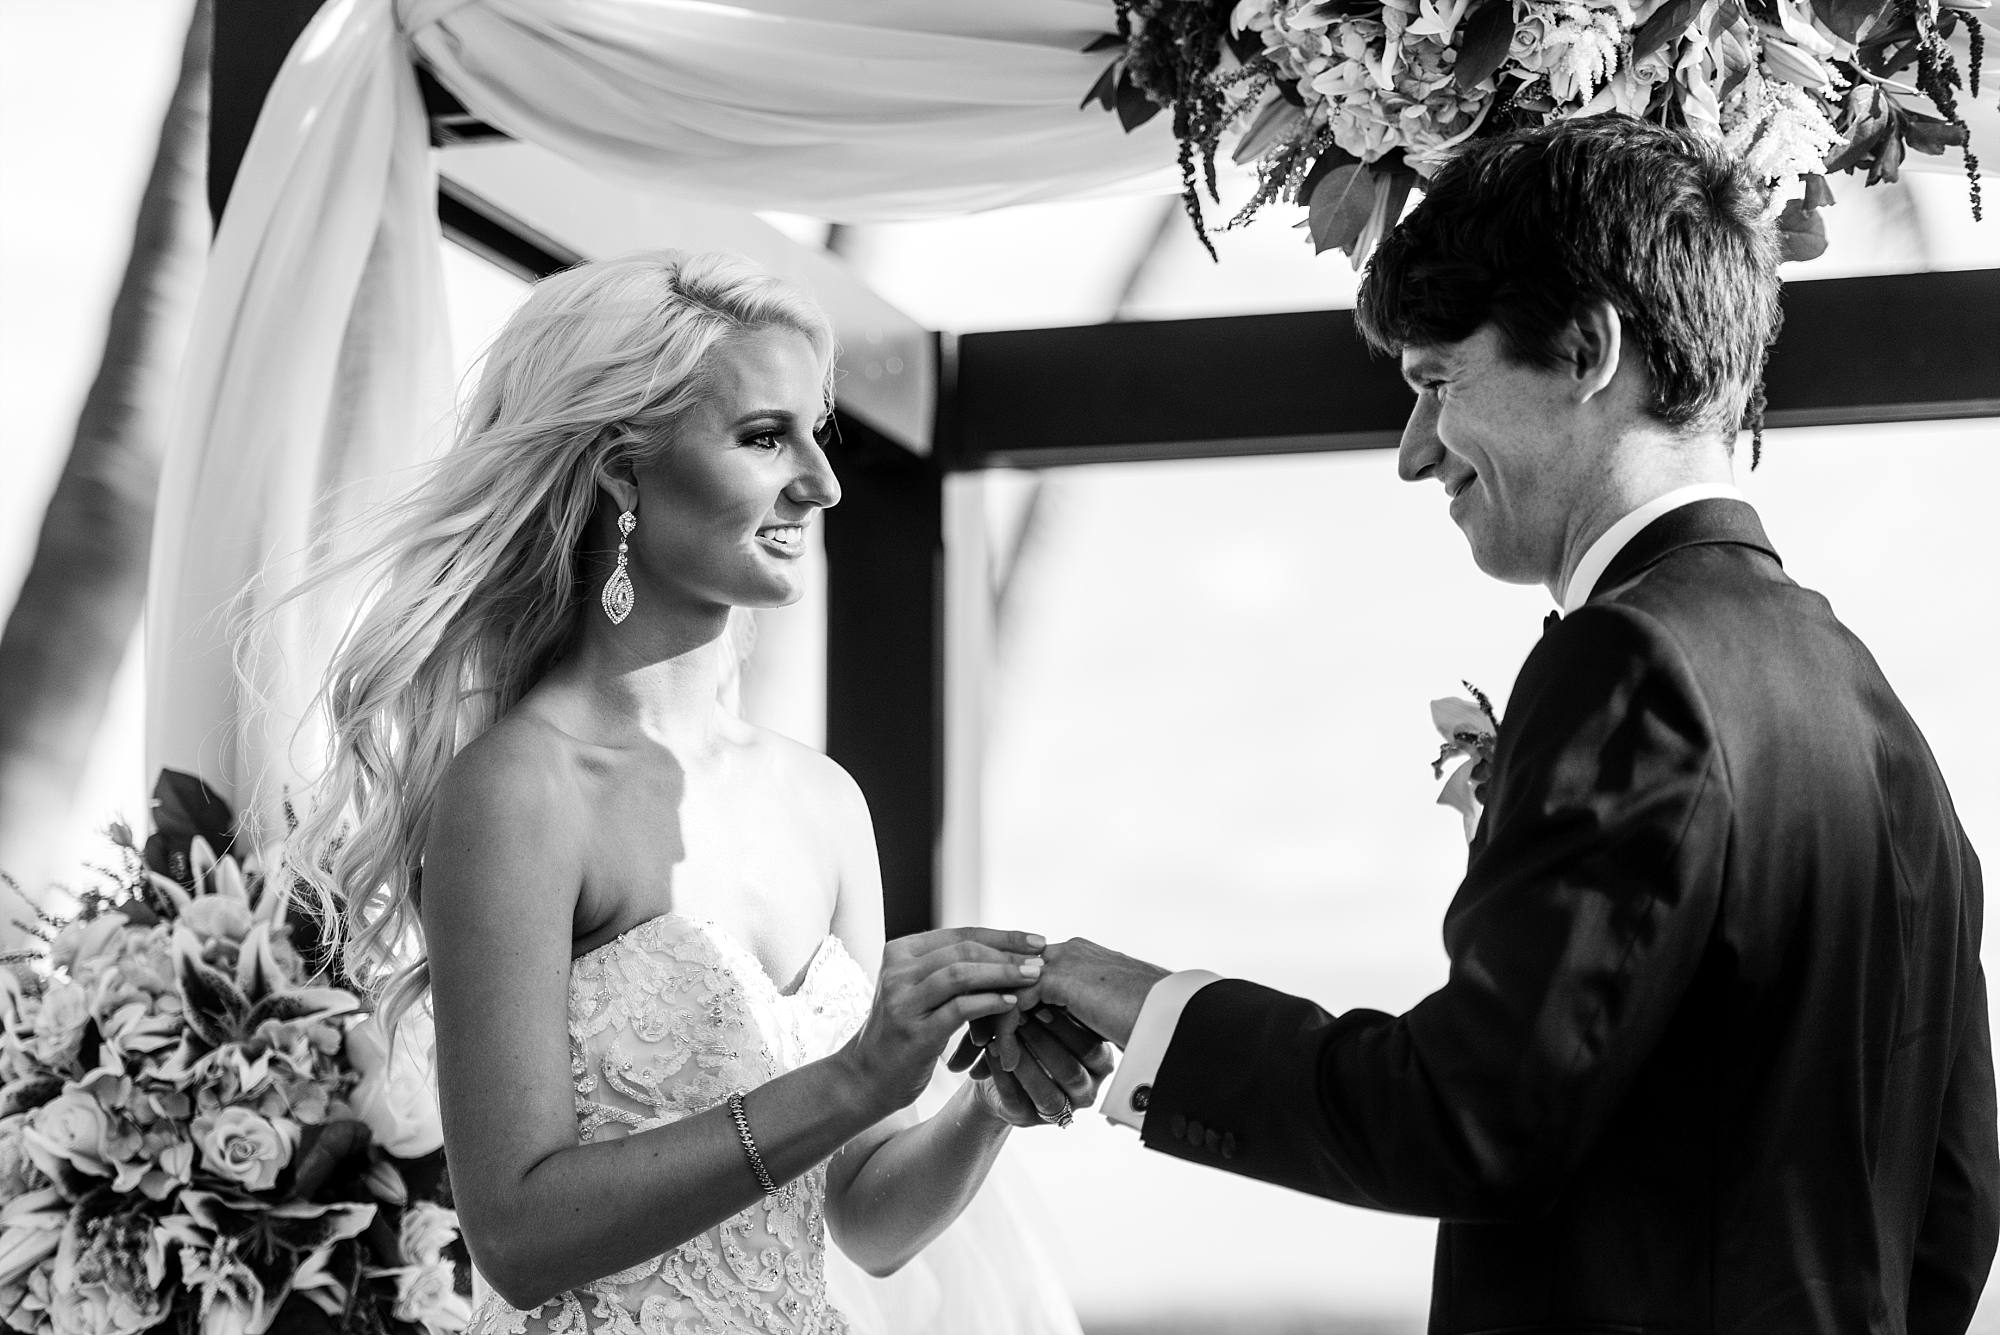 wedding couple exchanging rings, wind in their hair